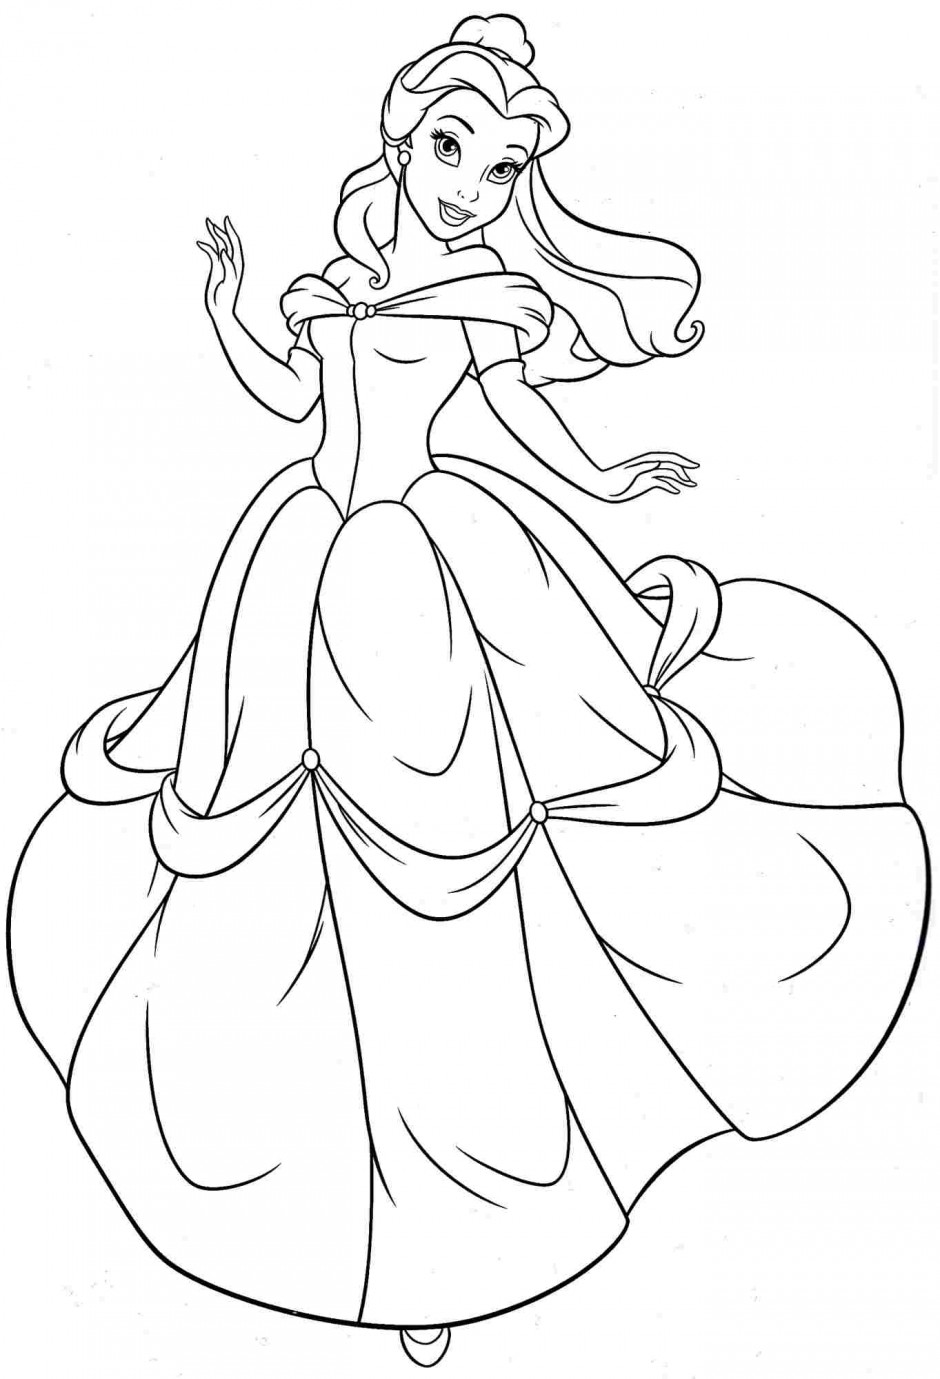 free coloring pages girls the best free coloring pages for girls pages girls coloring free